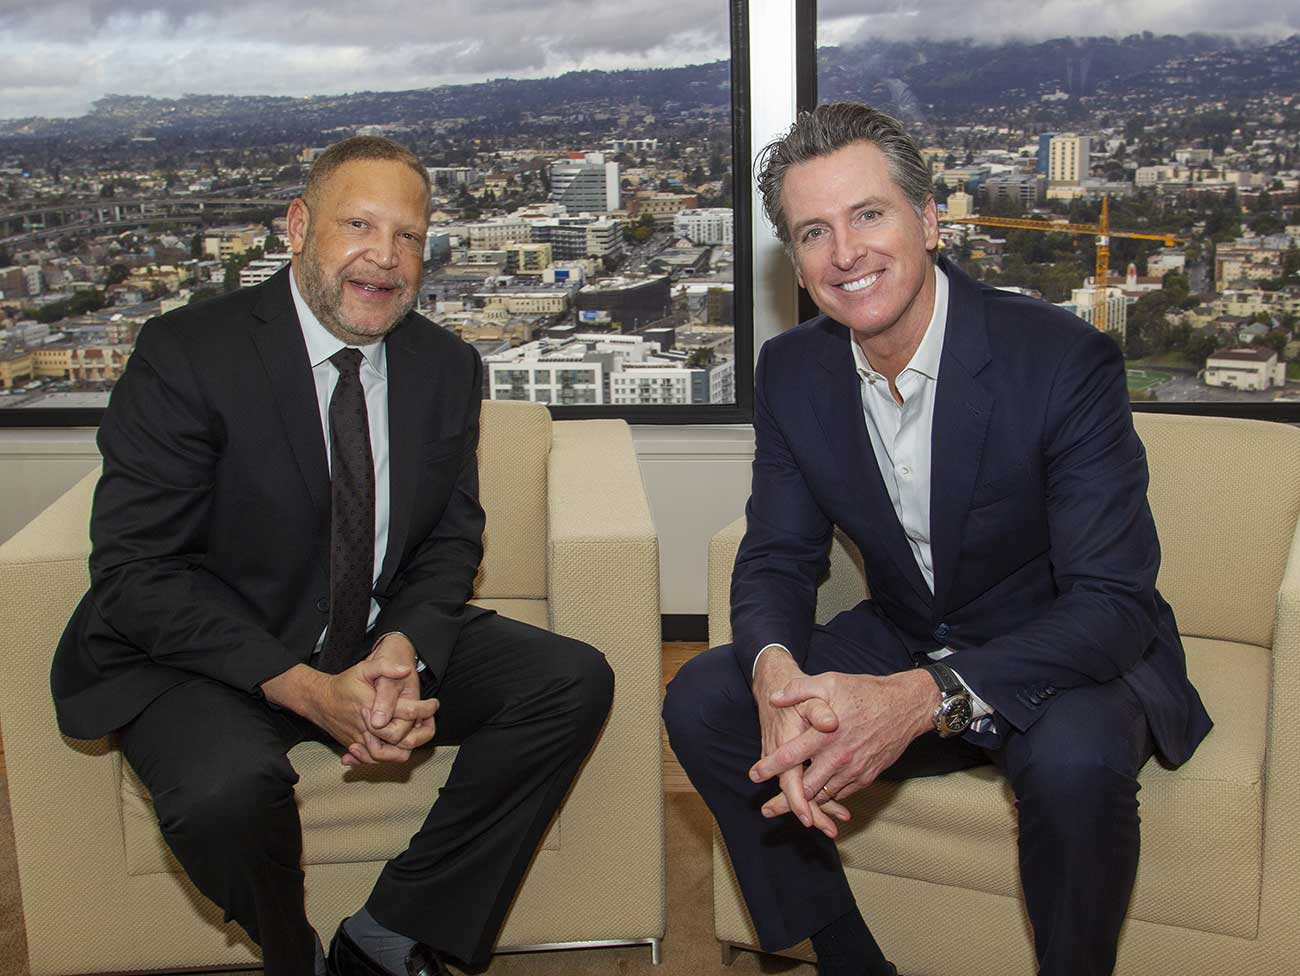 Kaiser Permanente Chairman and CEO Greg Adams and California Governor Gavin Newsom